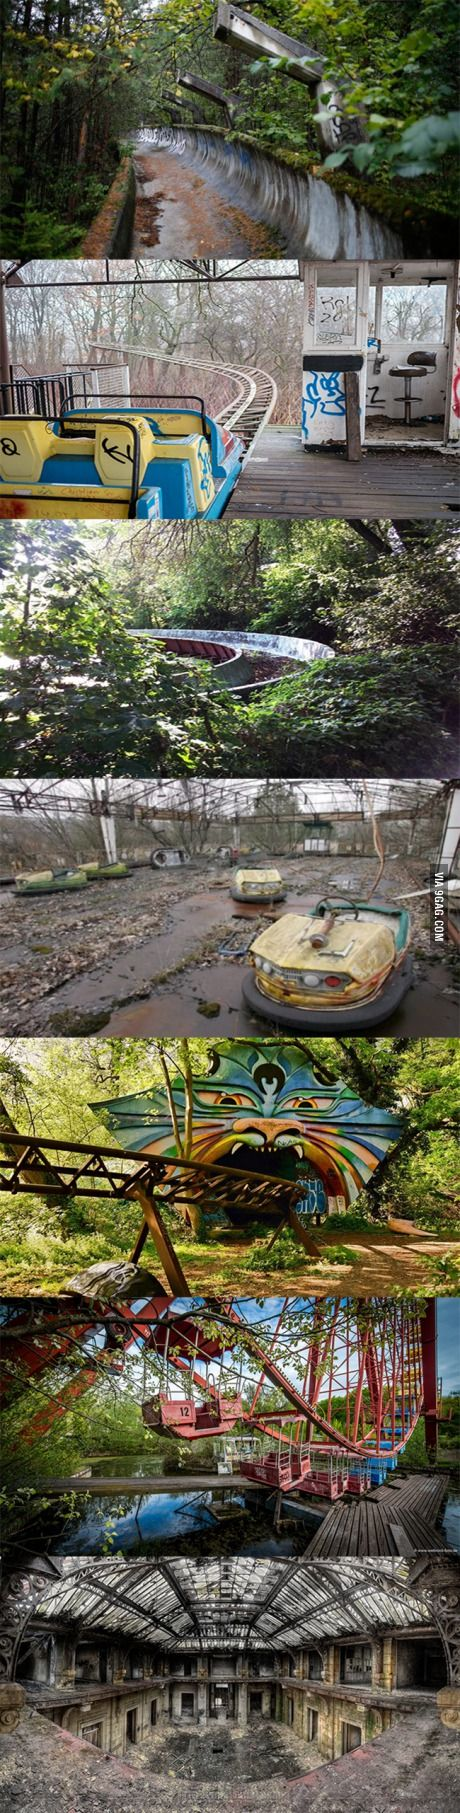 X Out Image >> I found out that there is an abandoned amusement park in Berlin. After visiting I need to say it ...